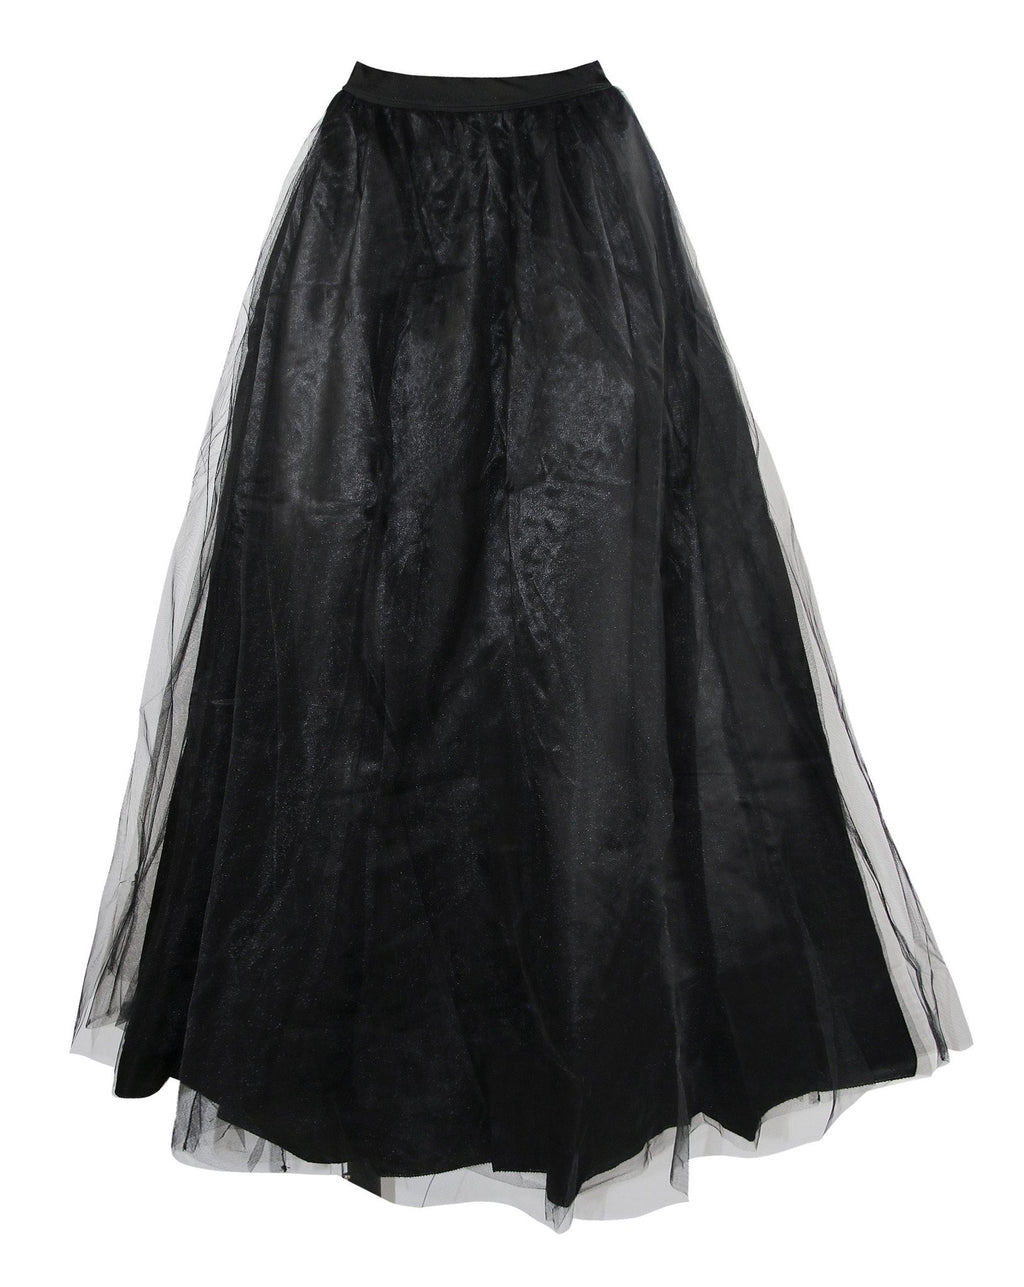 Women's Vintage Layered Tulle High Waisted Maxi Tutu Skirt Dress